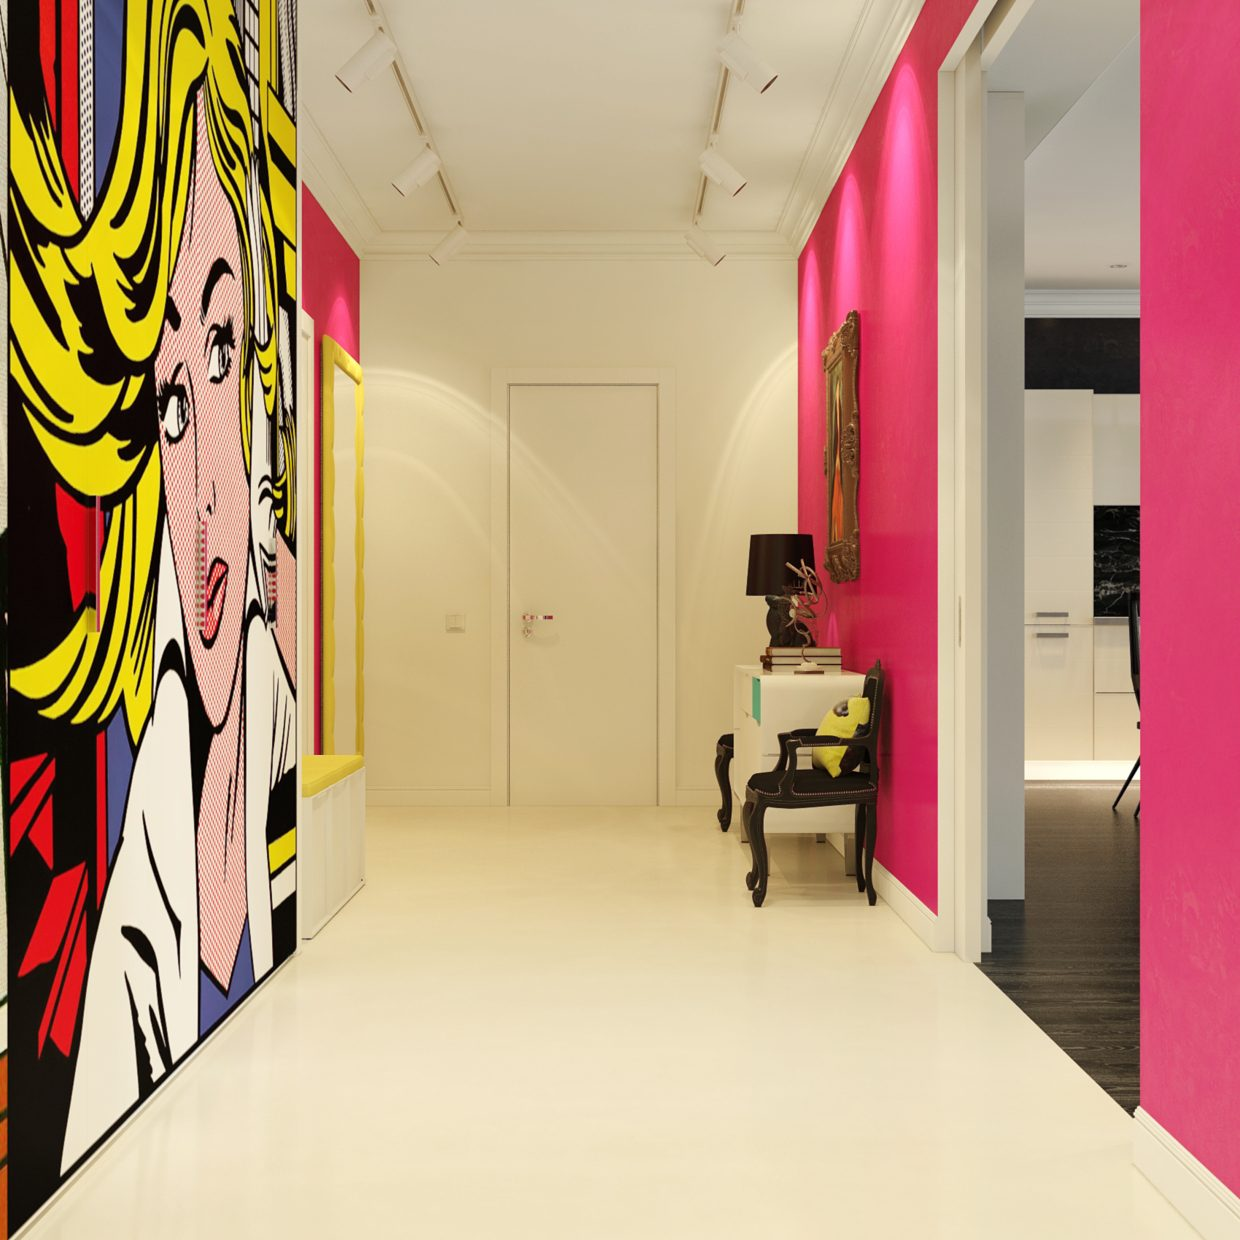 wall pop art interior design ideas